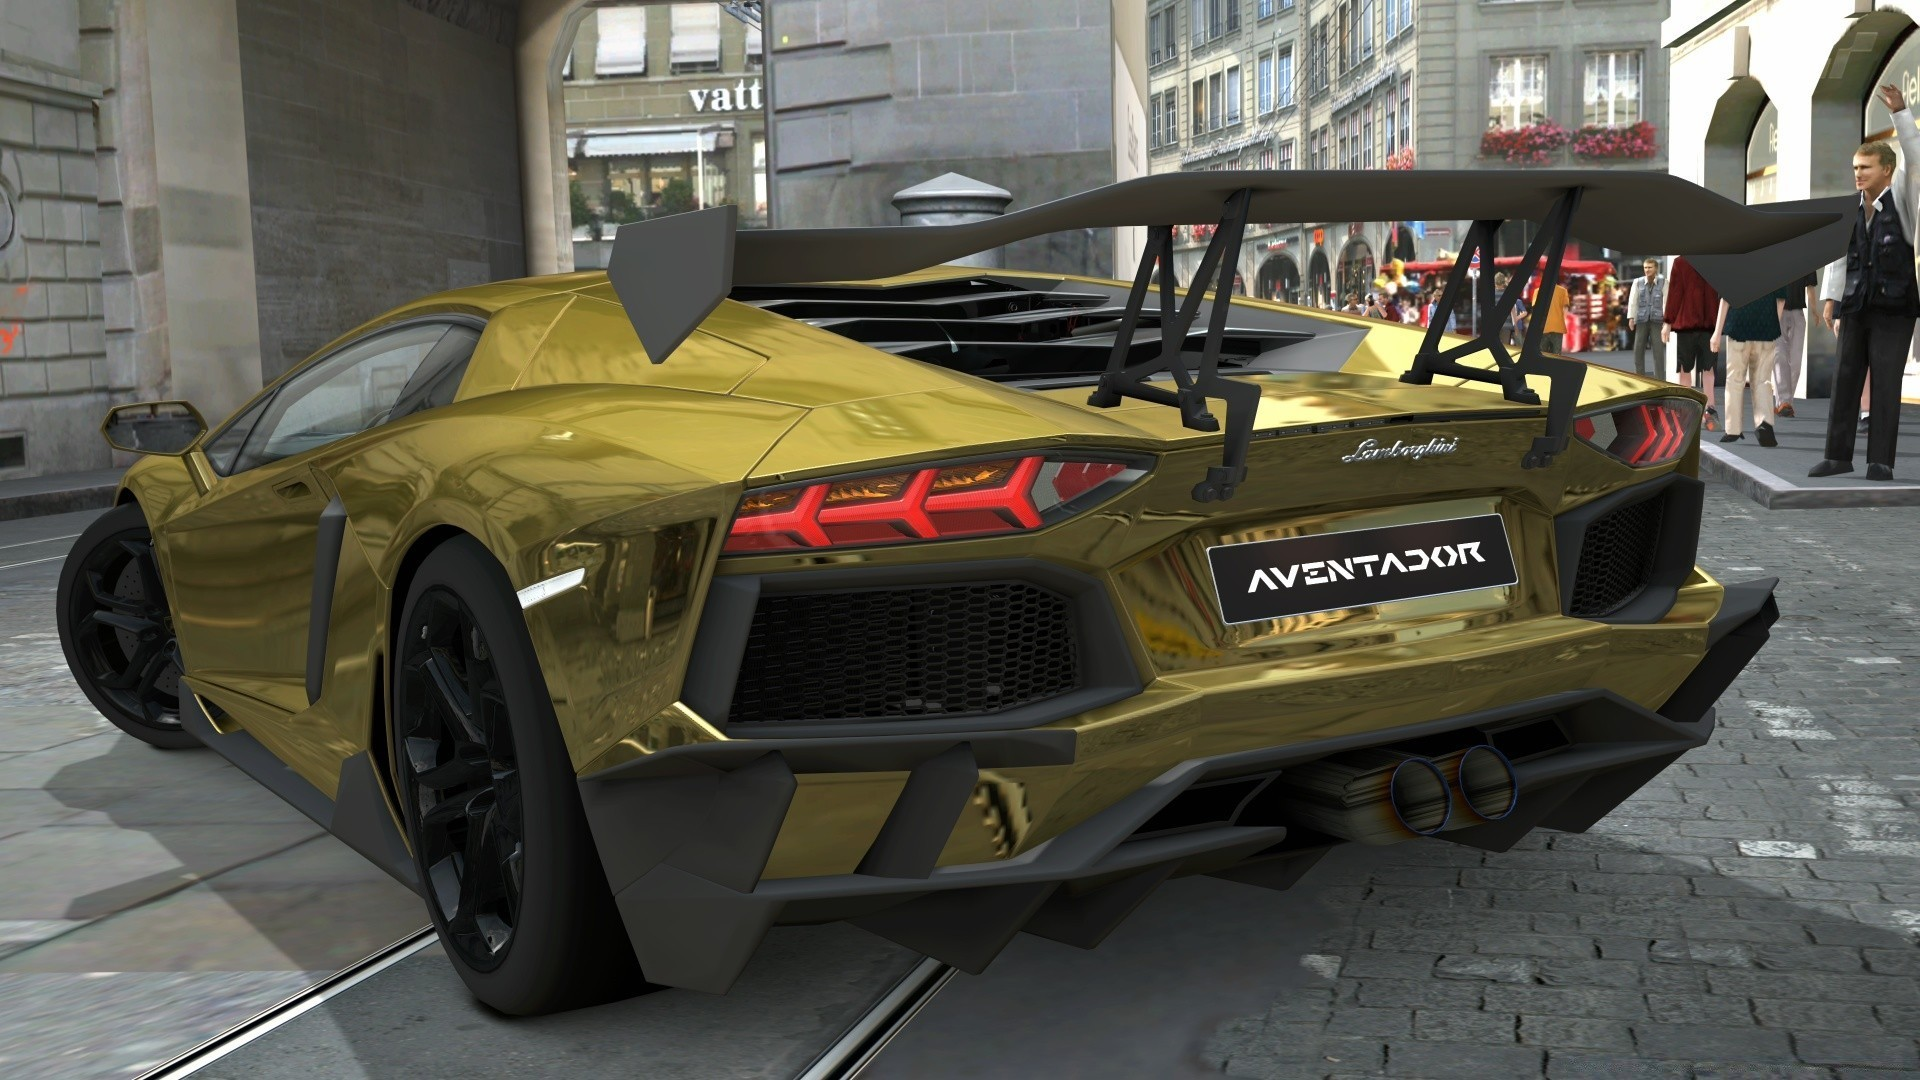 Res: 1920x1080, Lamborghini Aventador LP700-4 Gold Chrome, Gran Turismo 5. Android  wallpapers for free.